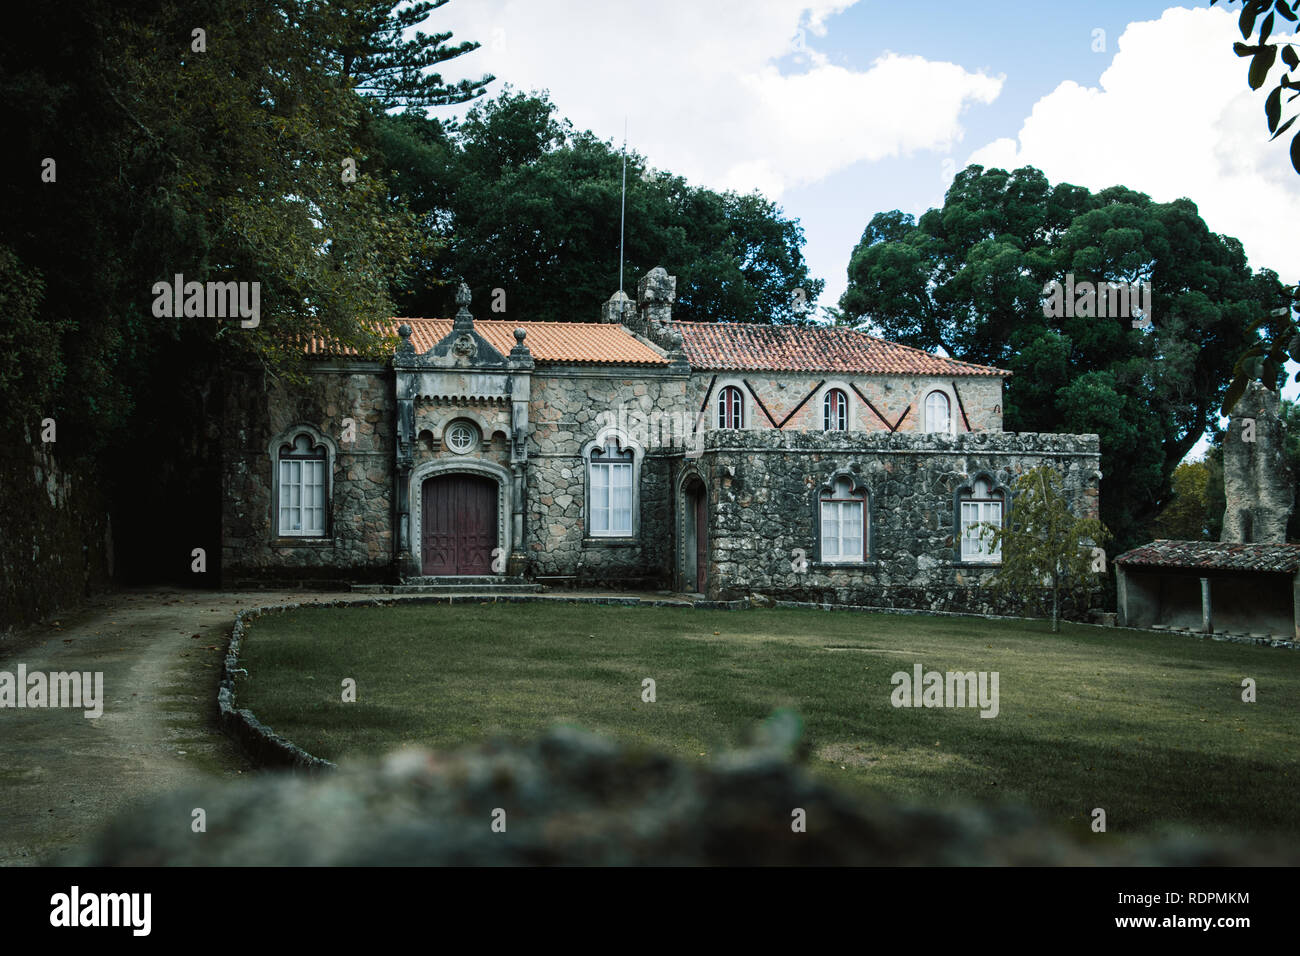 House in Sintra - Stock Image